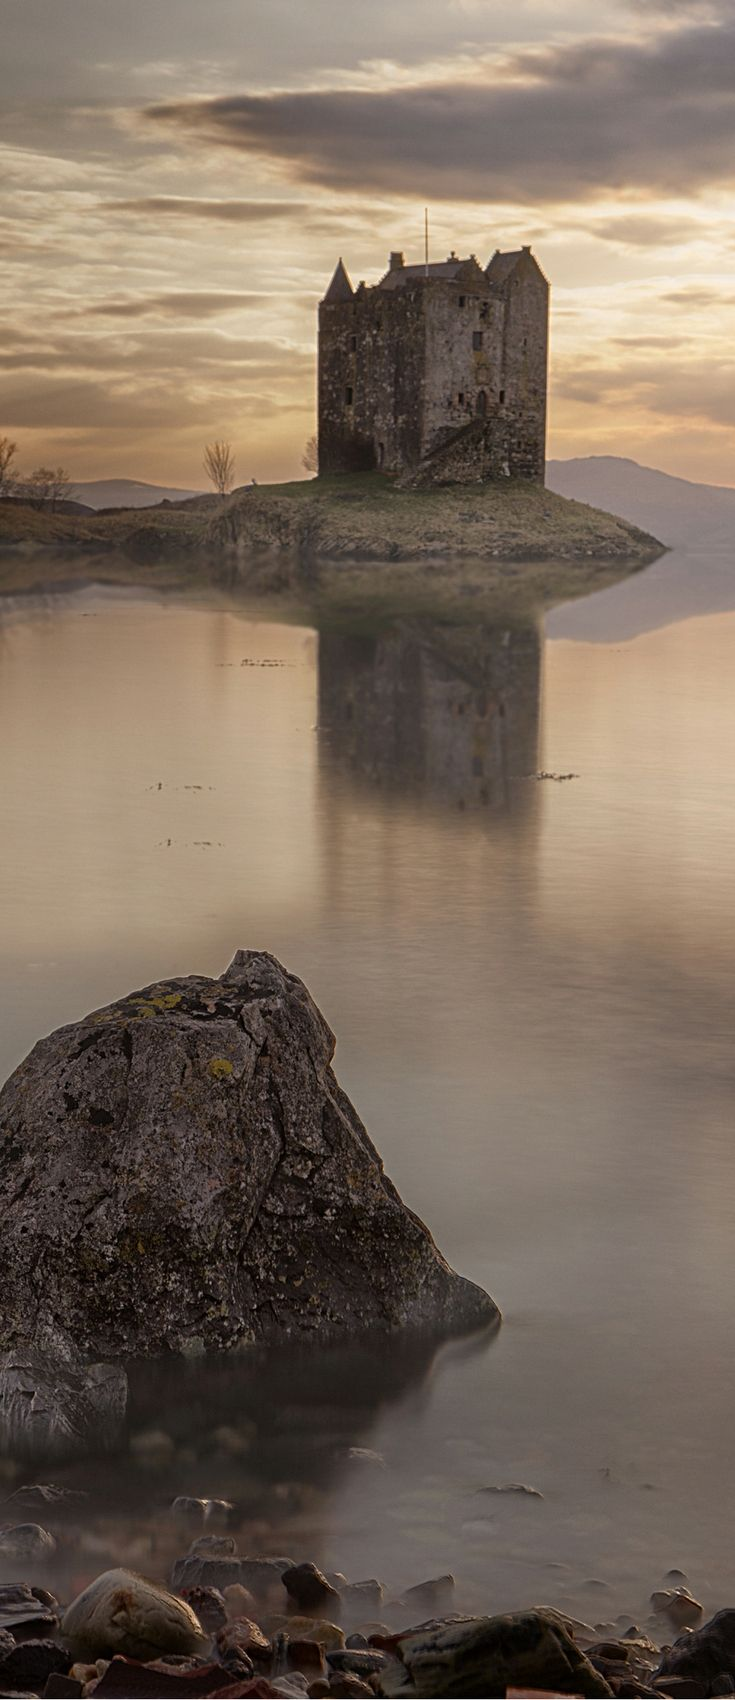 Scotland is awe-inspiring, powerful, and even spiritual. The country's crumbling ruins interspersed throughout the landscape truly move…